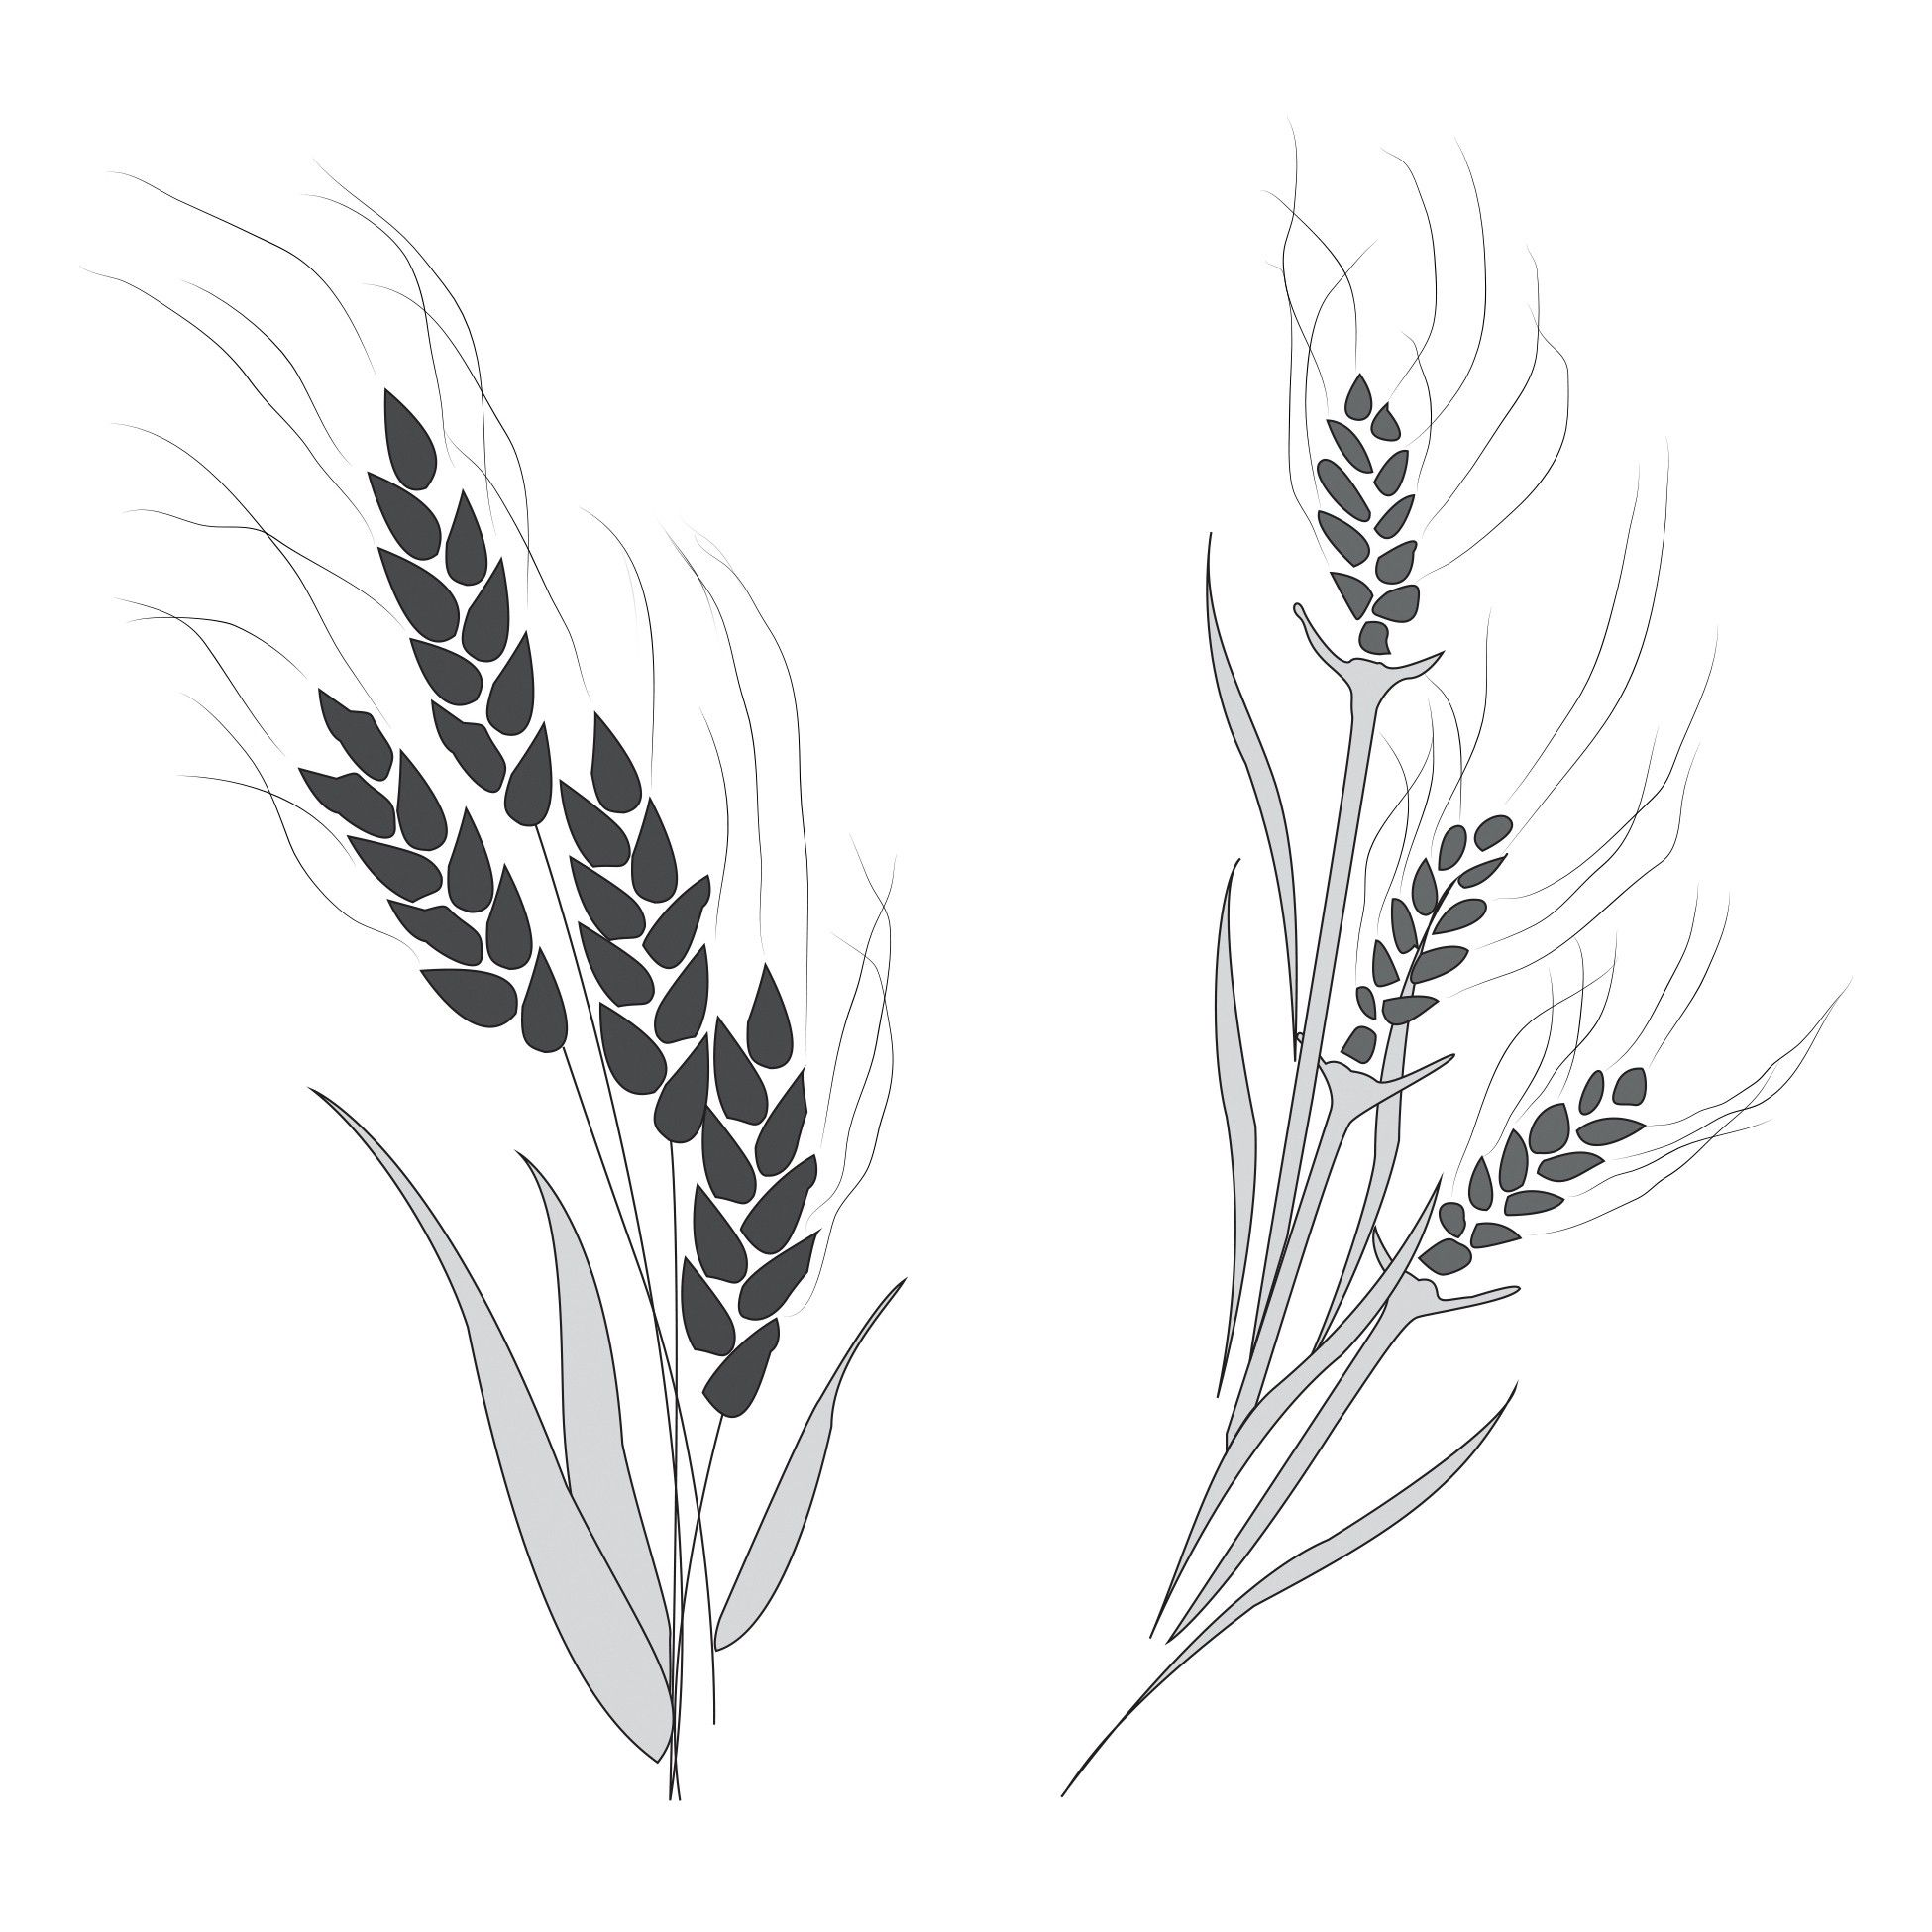 A black-and-white illustration of wheat and a tare.